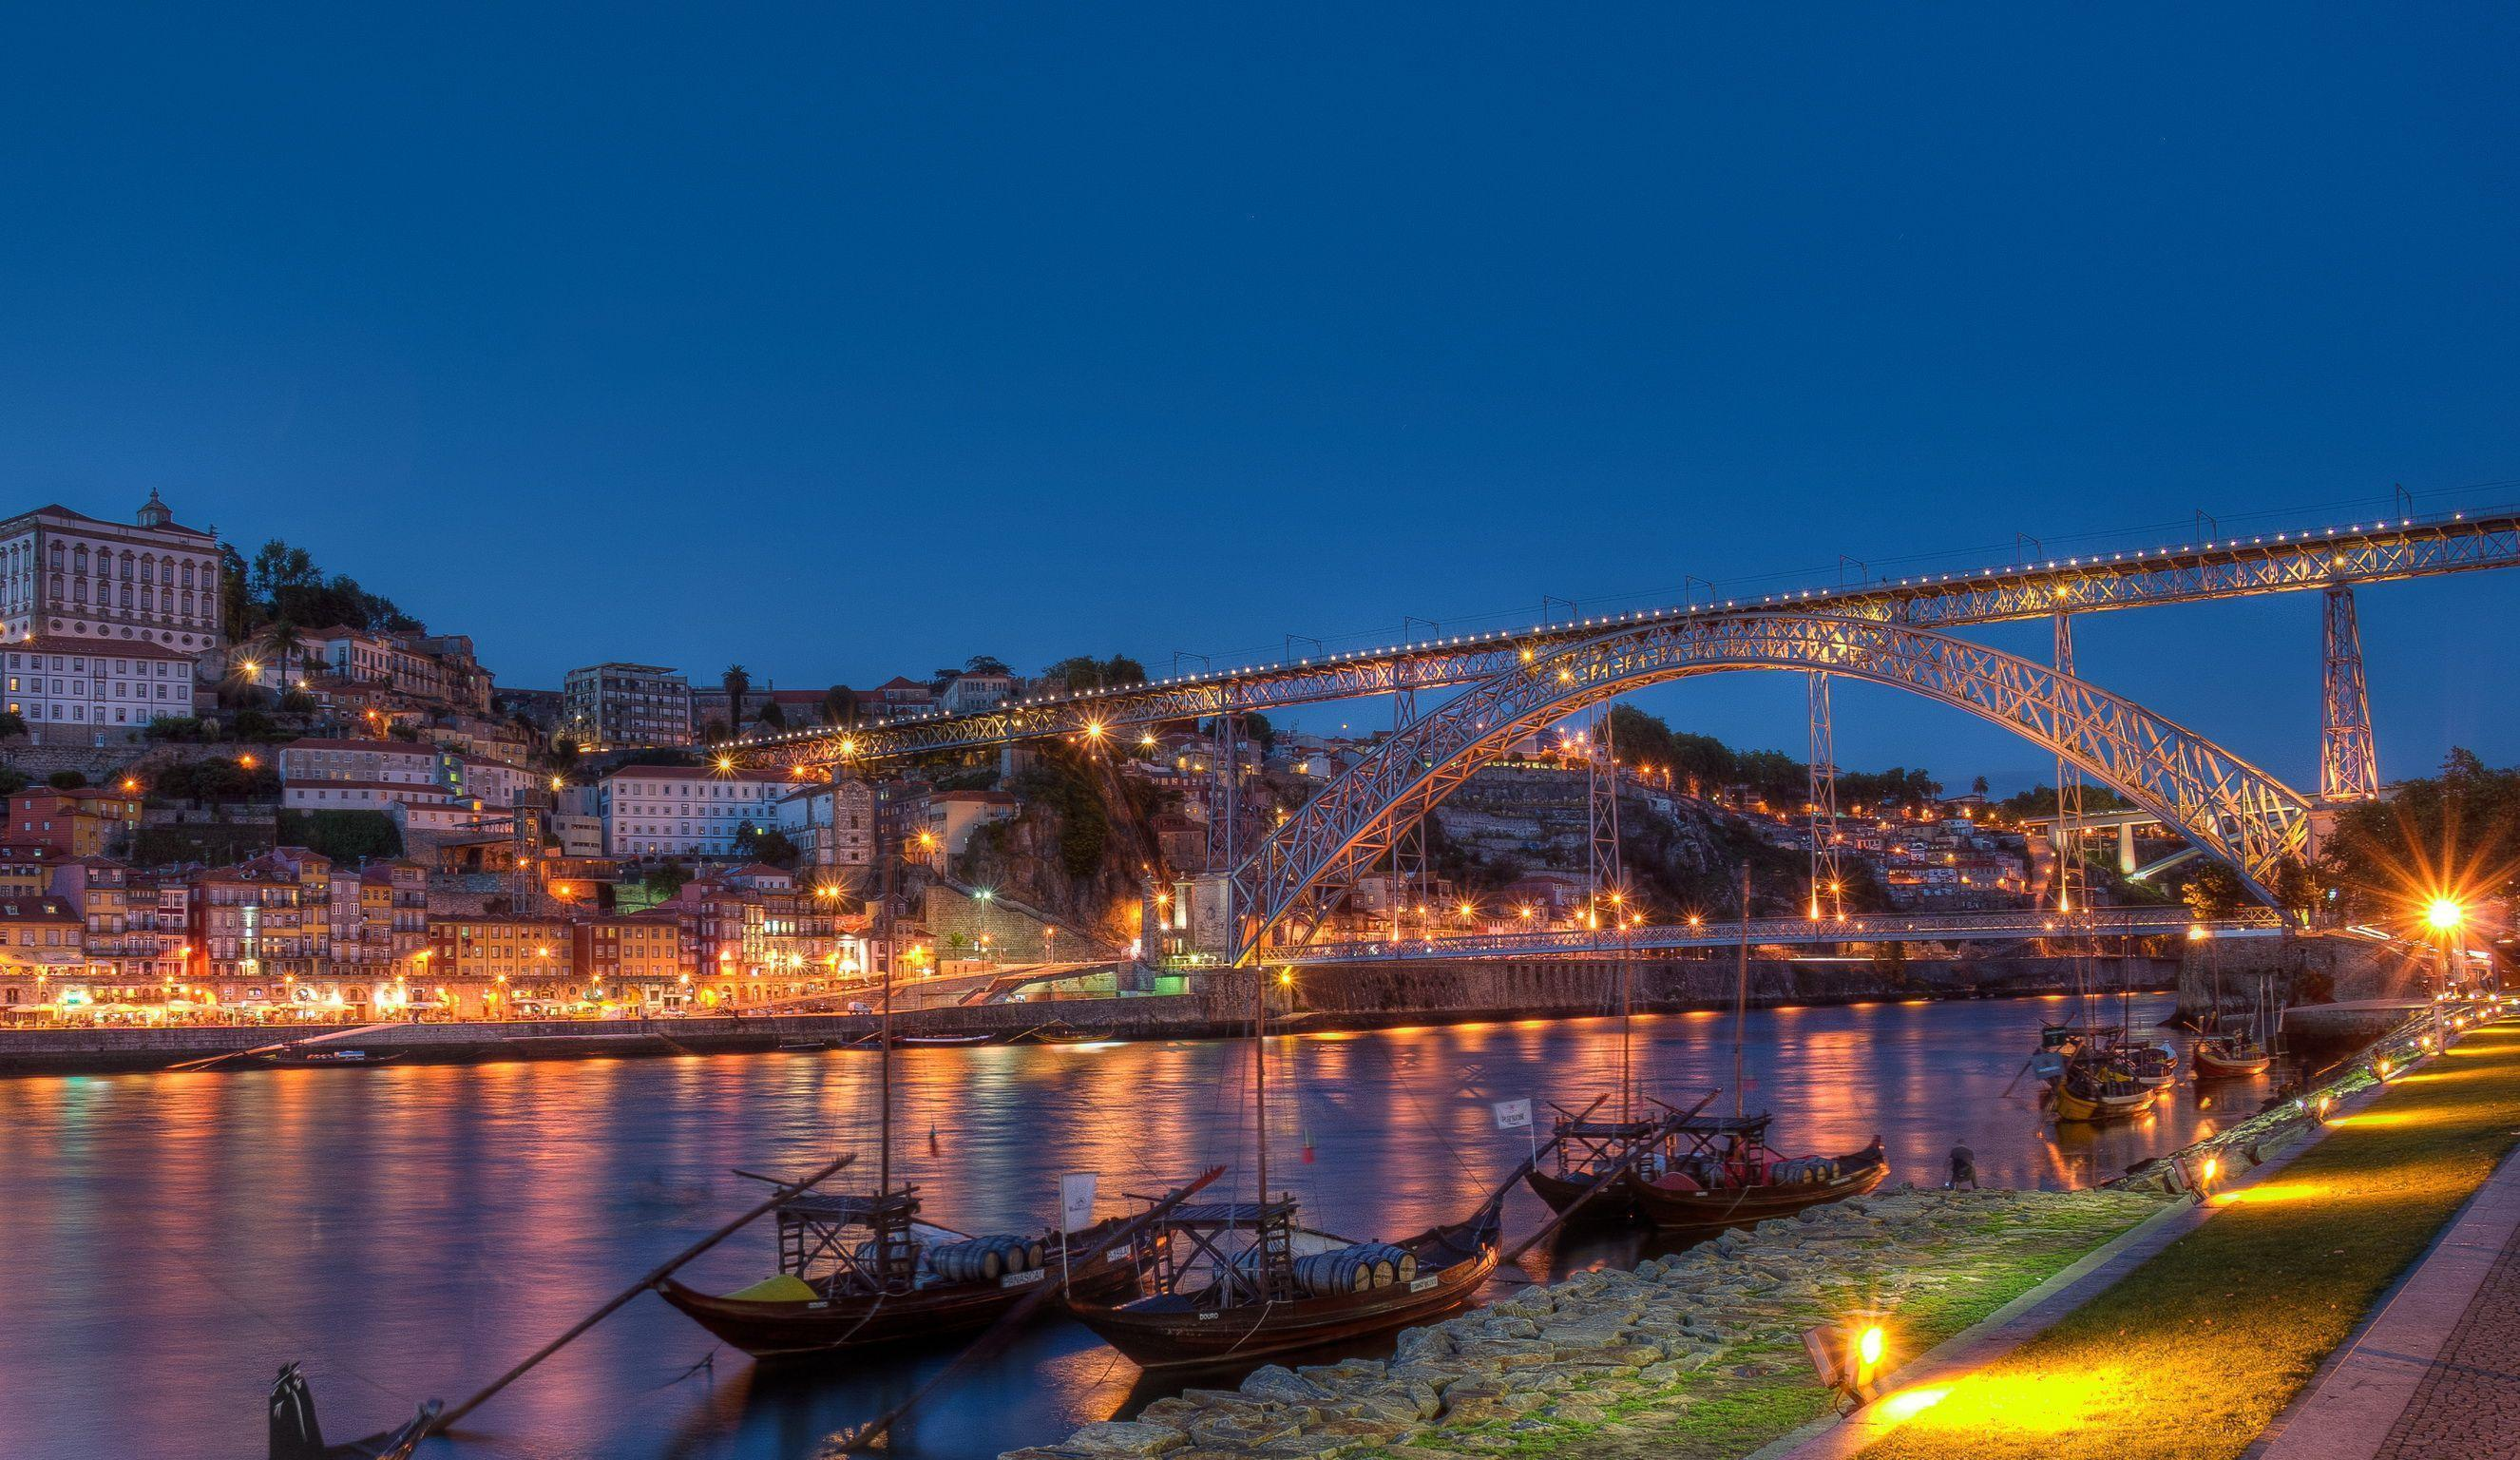 Porto Movie Wallpapers | WallpapersIn4k.net